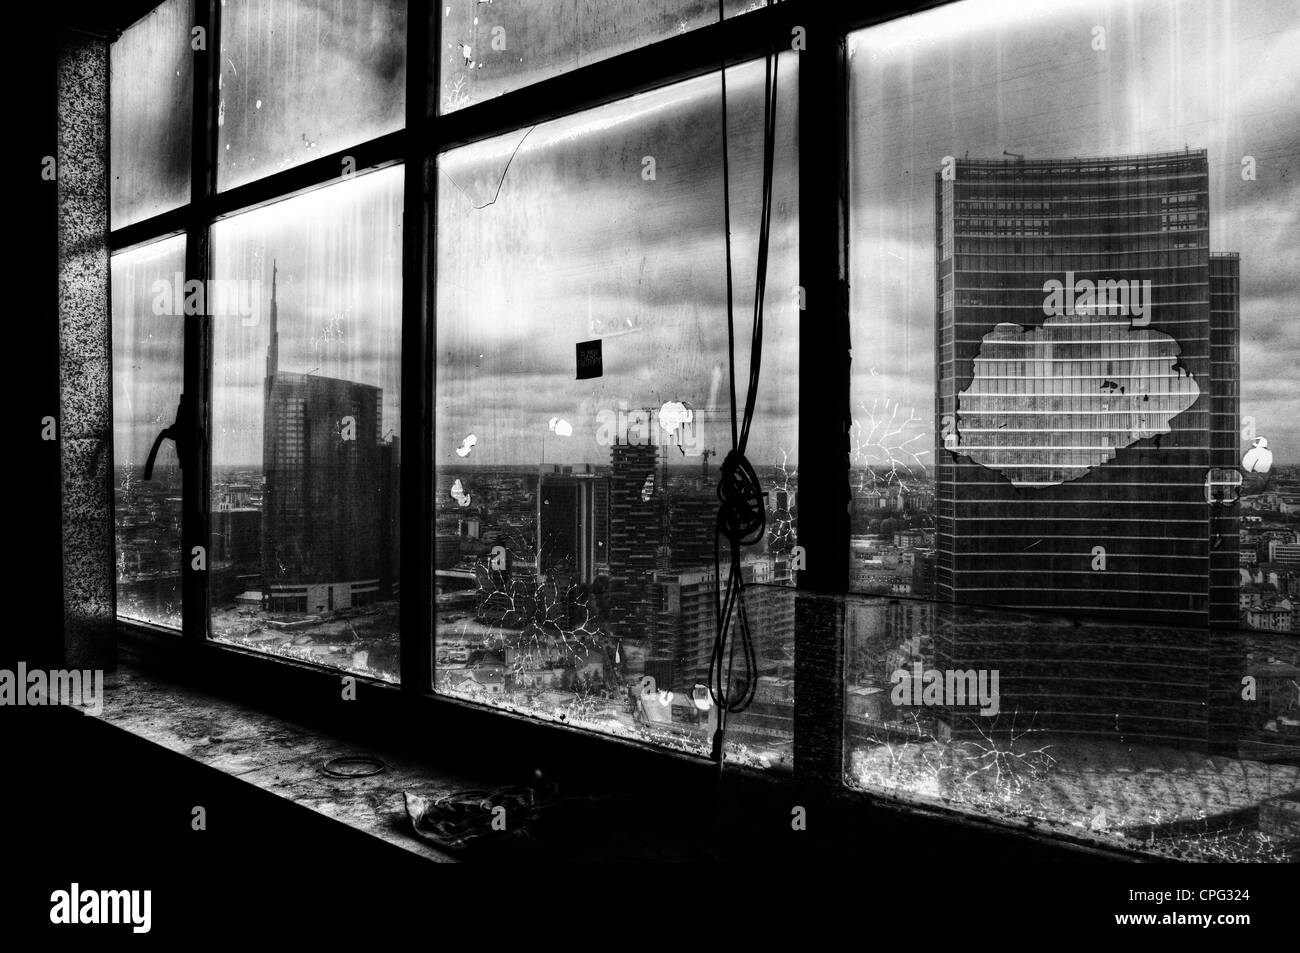 View from Galfa Tower skyscraper, Milan, Italy - 2012 - Stock Image